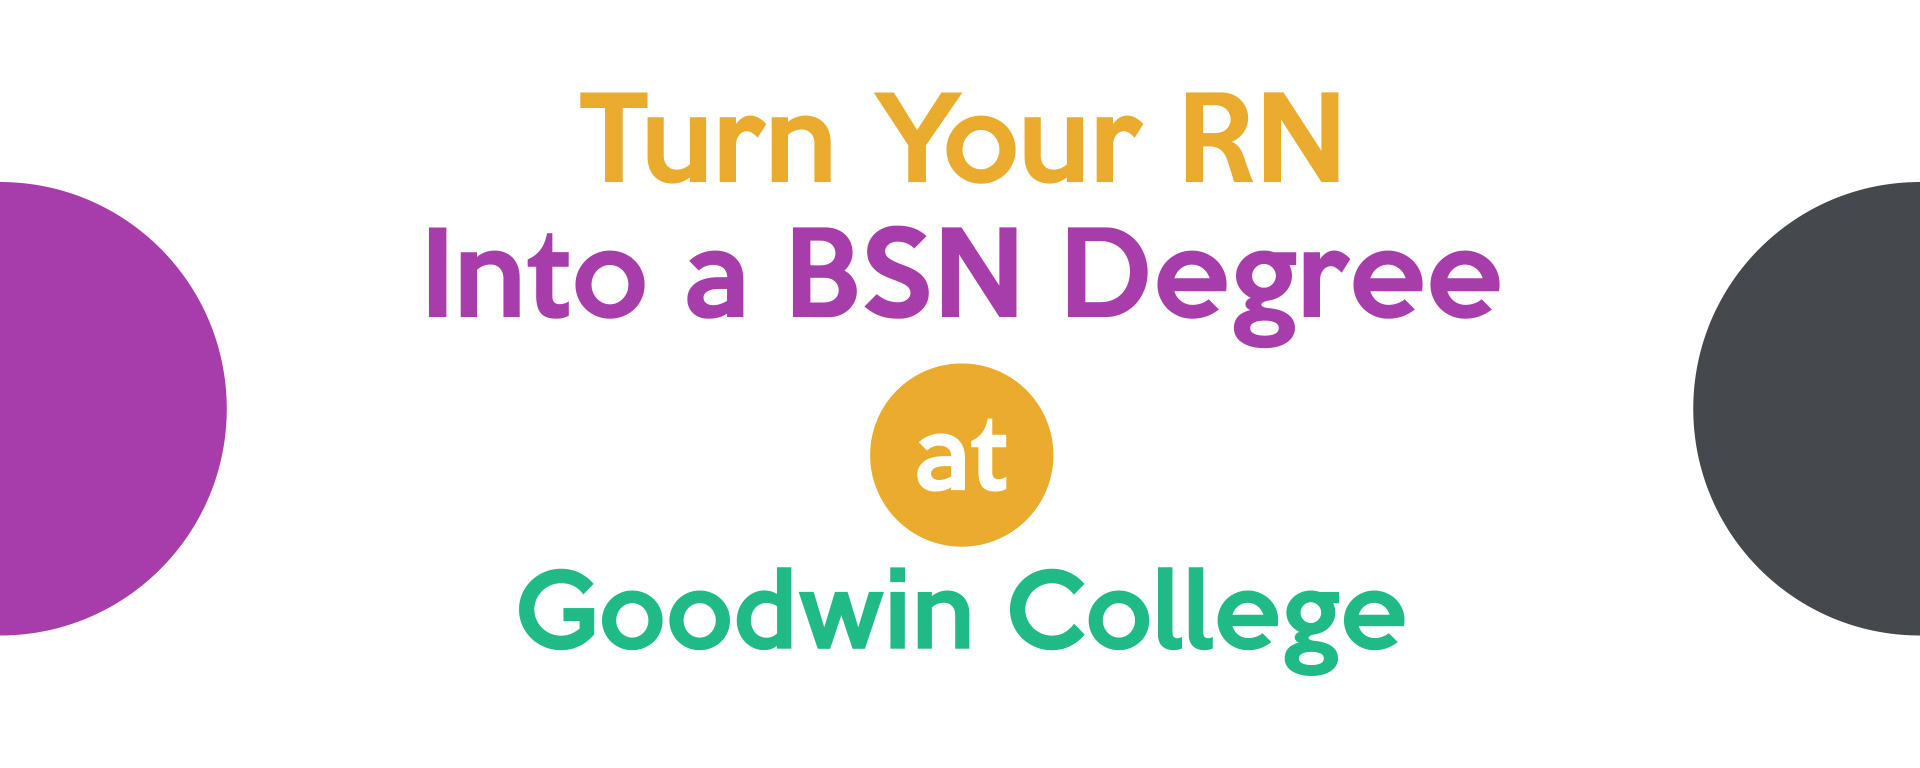 turn your RN into a BSN Degree